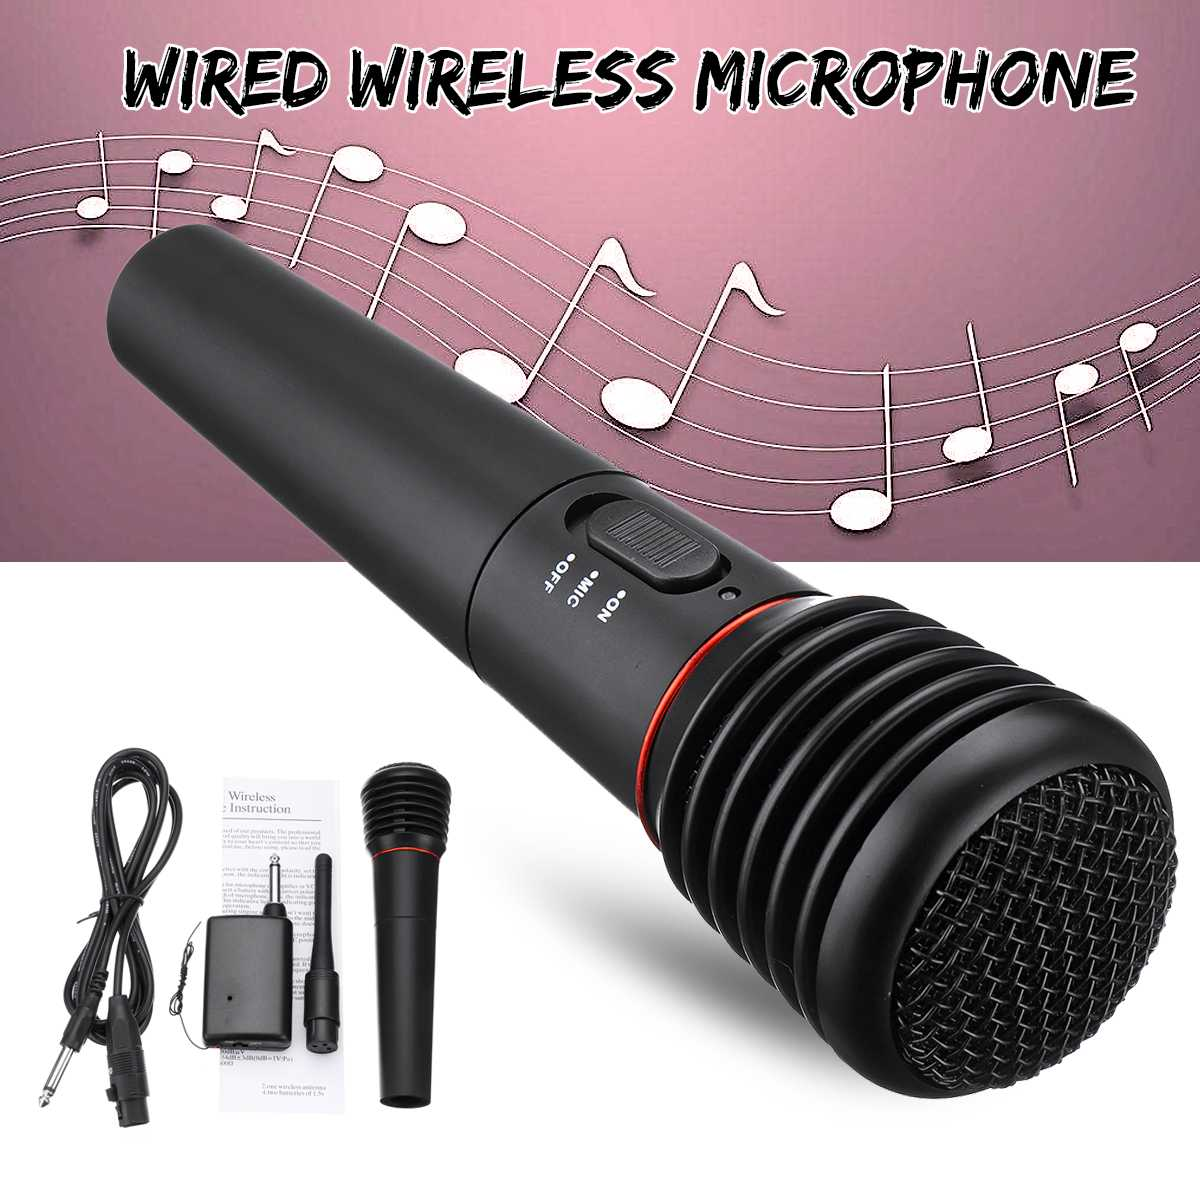 2in1 Professional Wired Wireless Handheld Microphone Mic Dynamic Cordless For KTV Karaoke Party Recording Speaking Stage Gift